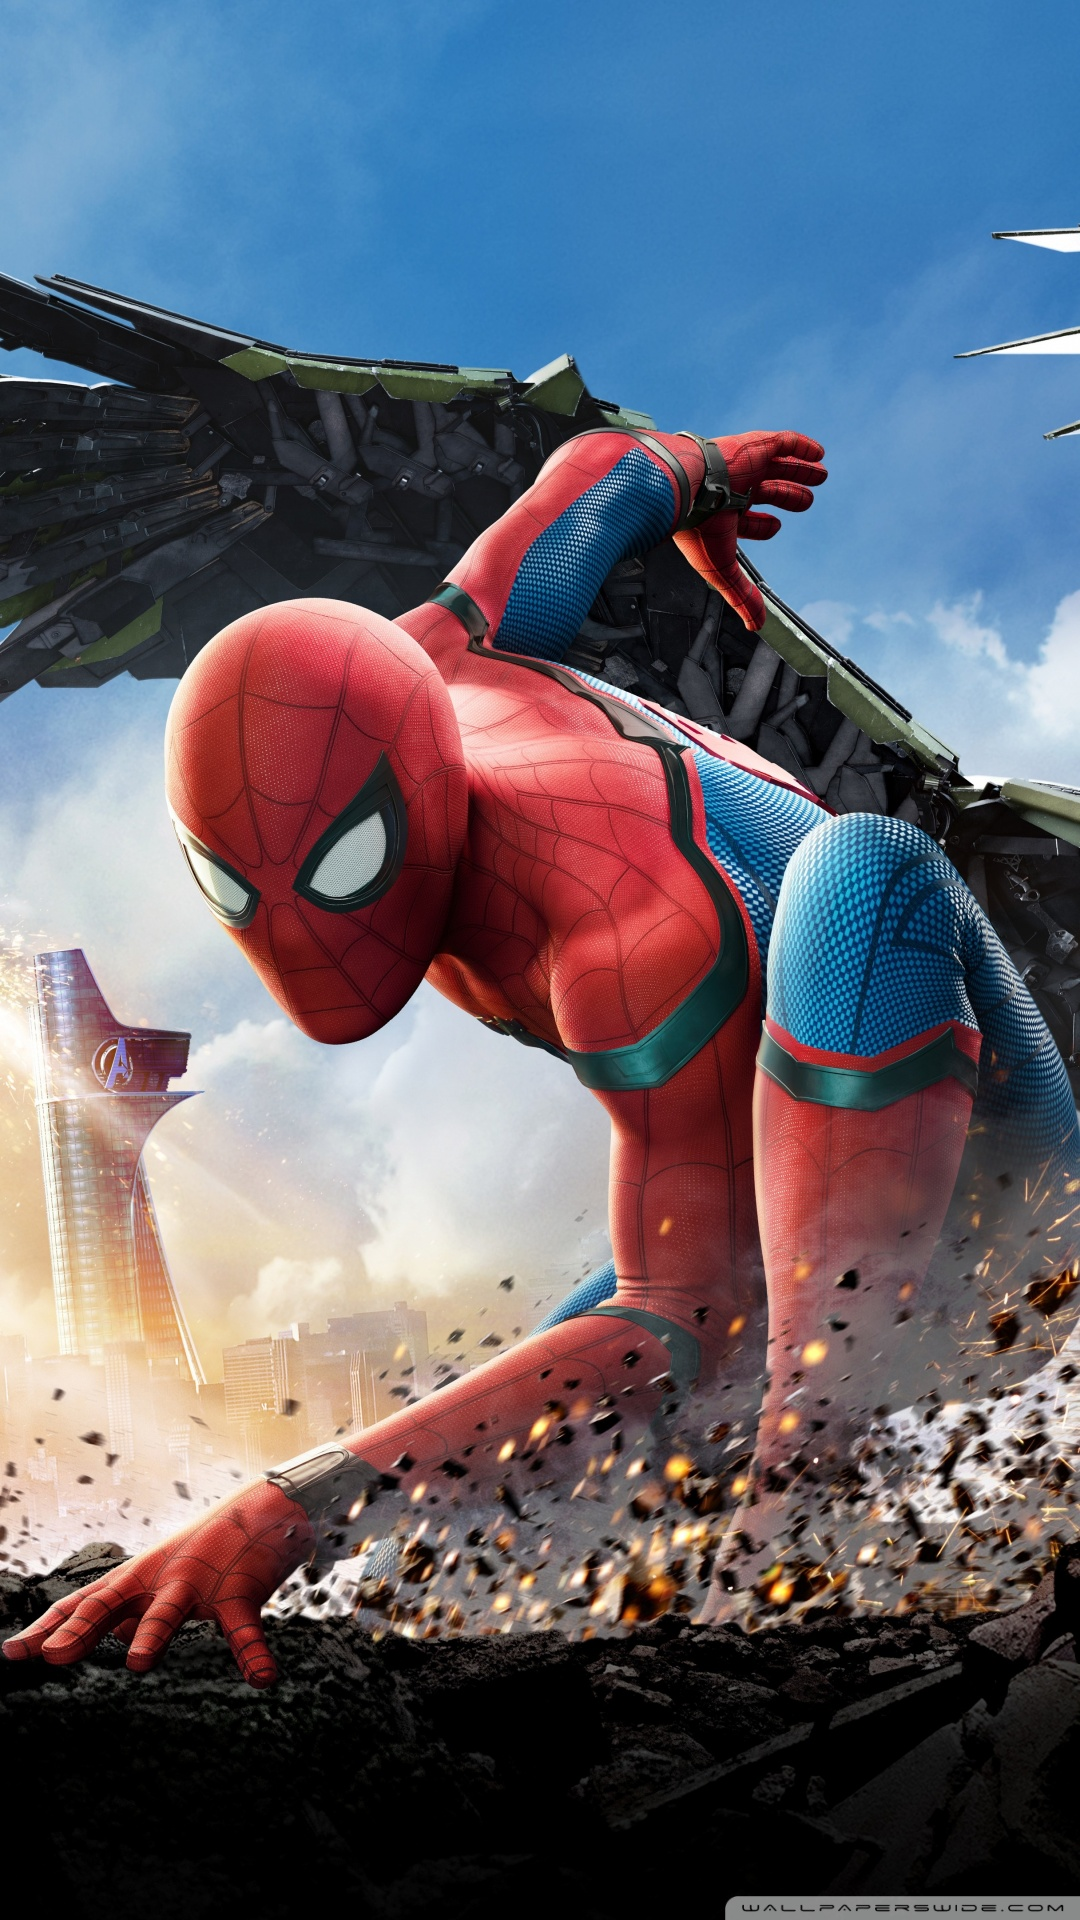 SPIDERMAN HOMECOMING 2017 4K HD Desktop Wallpaper for Wide 1080x1920